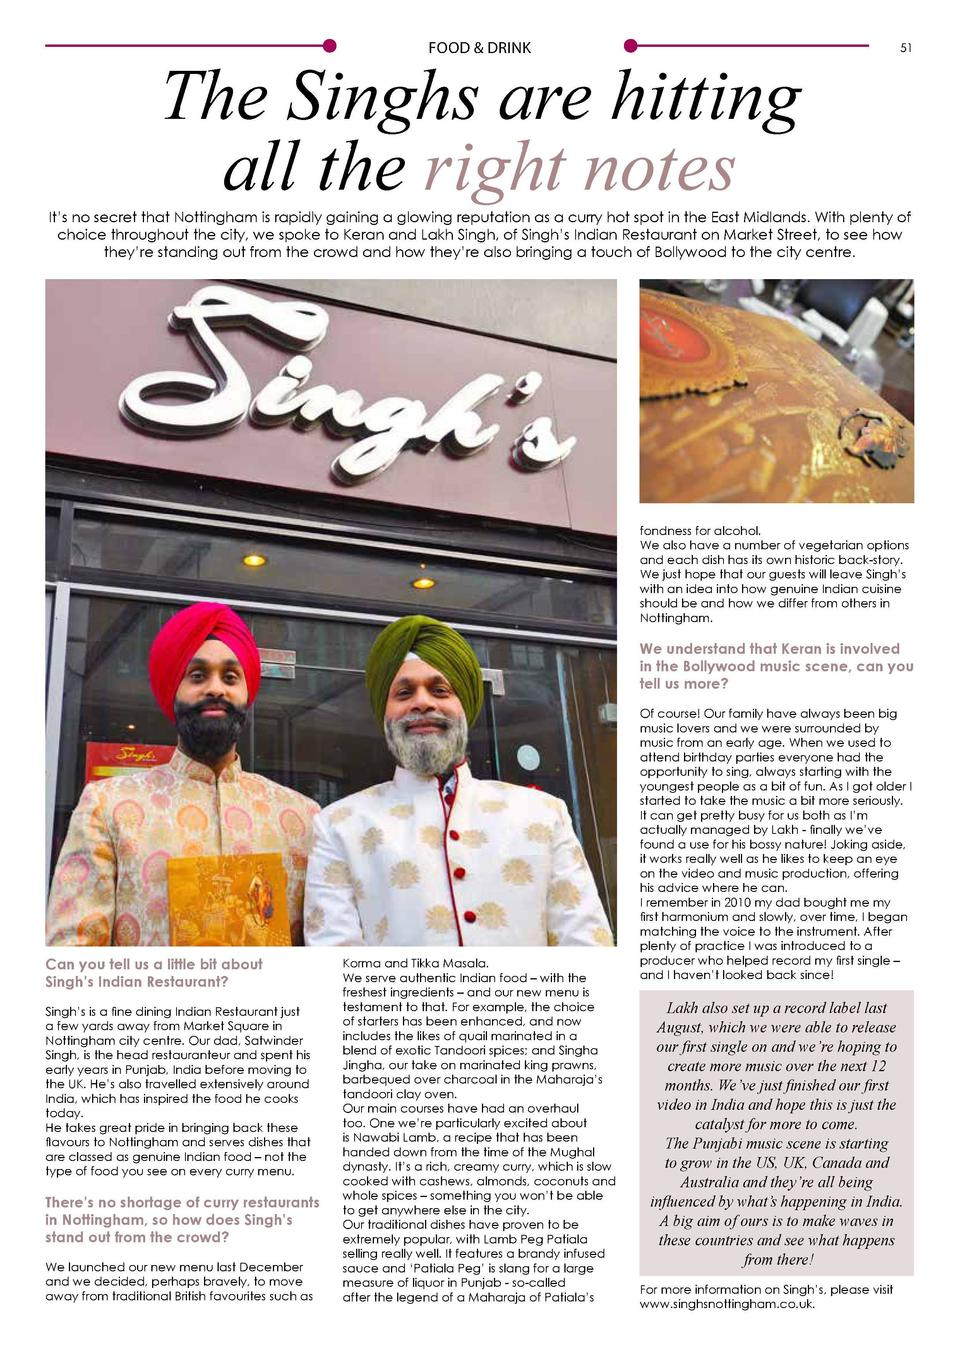 FOOD   DRINK  50  FOOD   DRINK  The Singhs are hitting all the right notes  51  It   s no secret that Nottingham is rapidl...